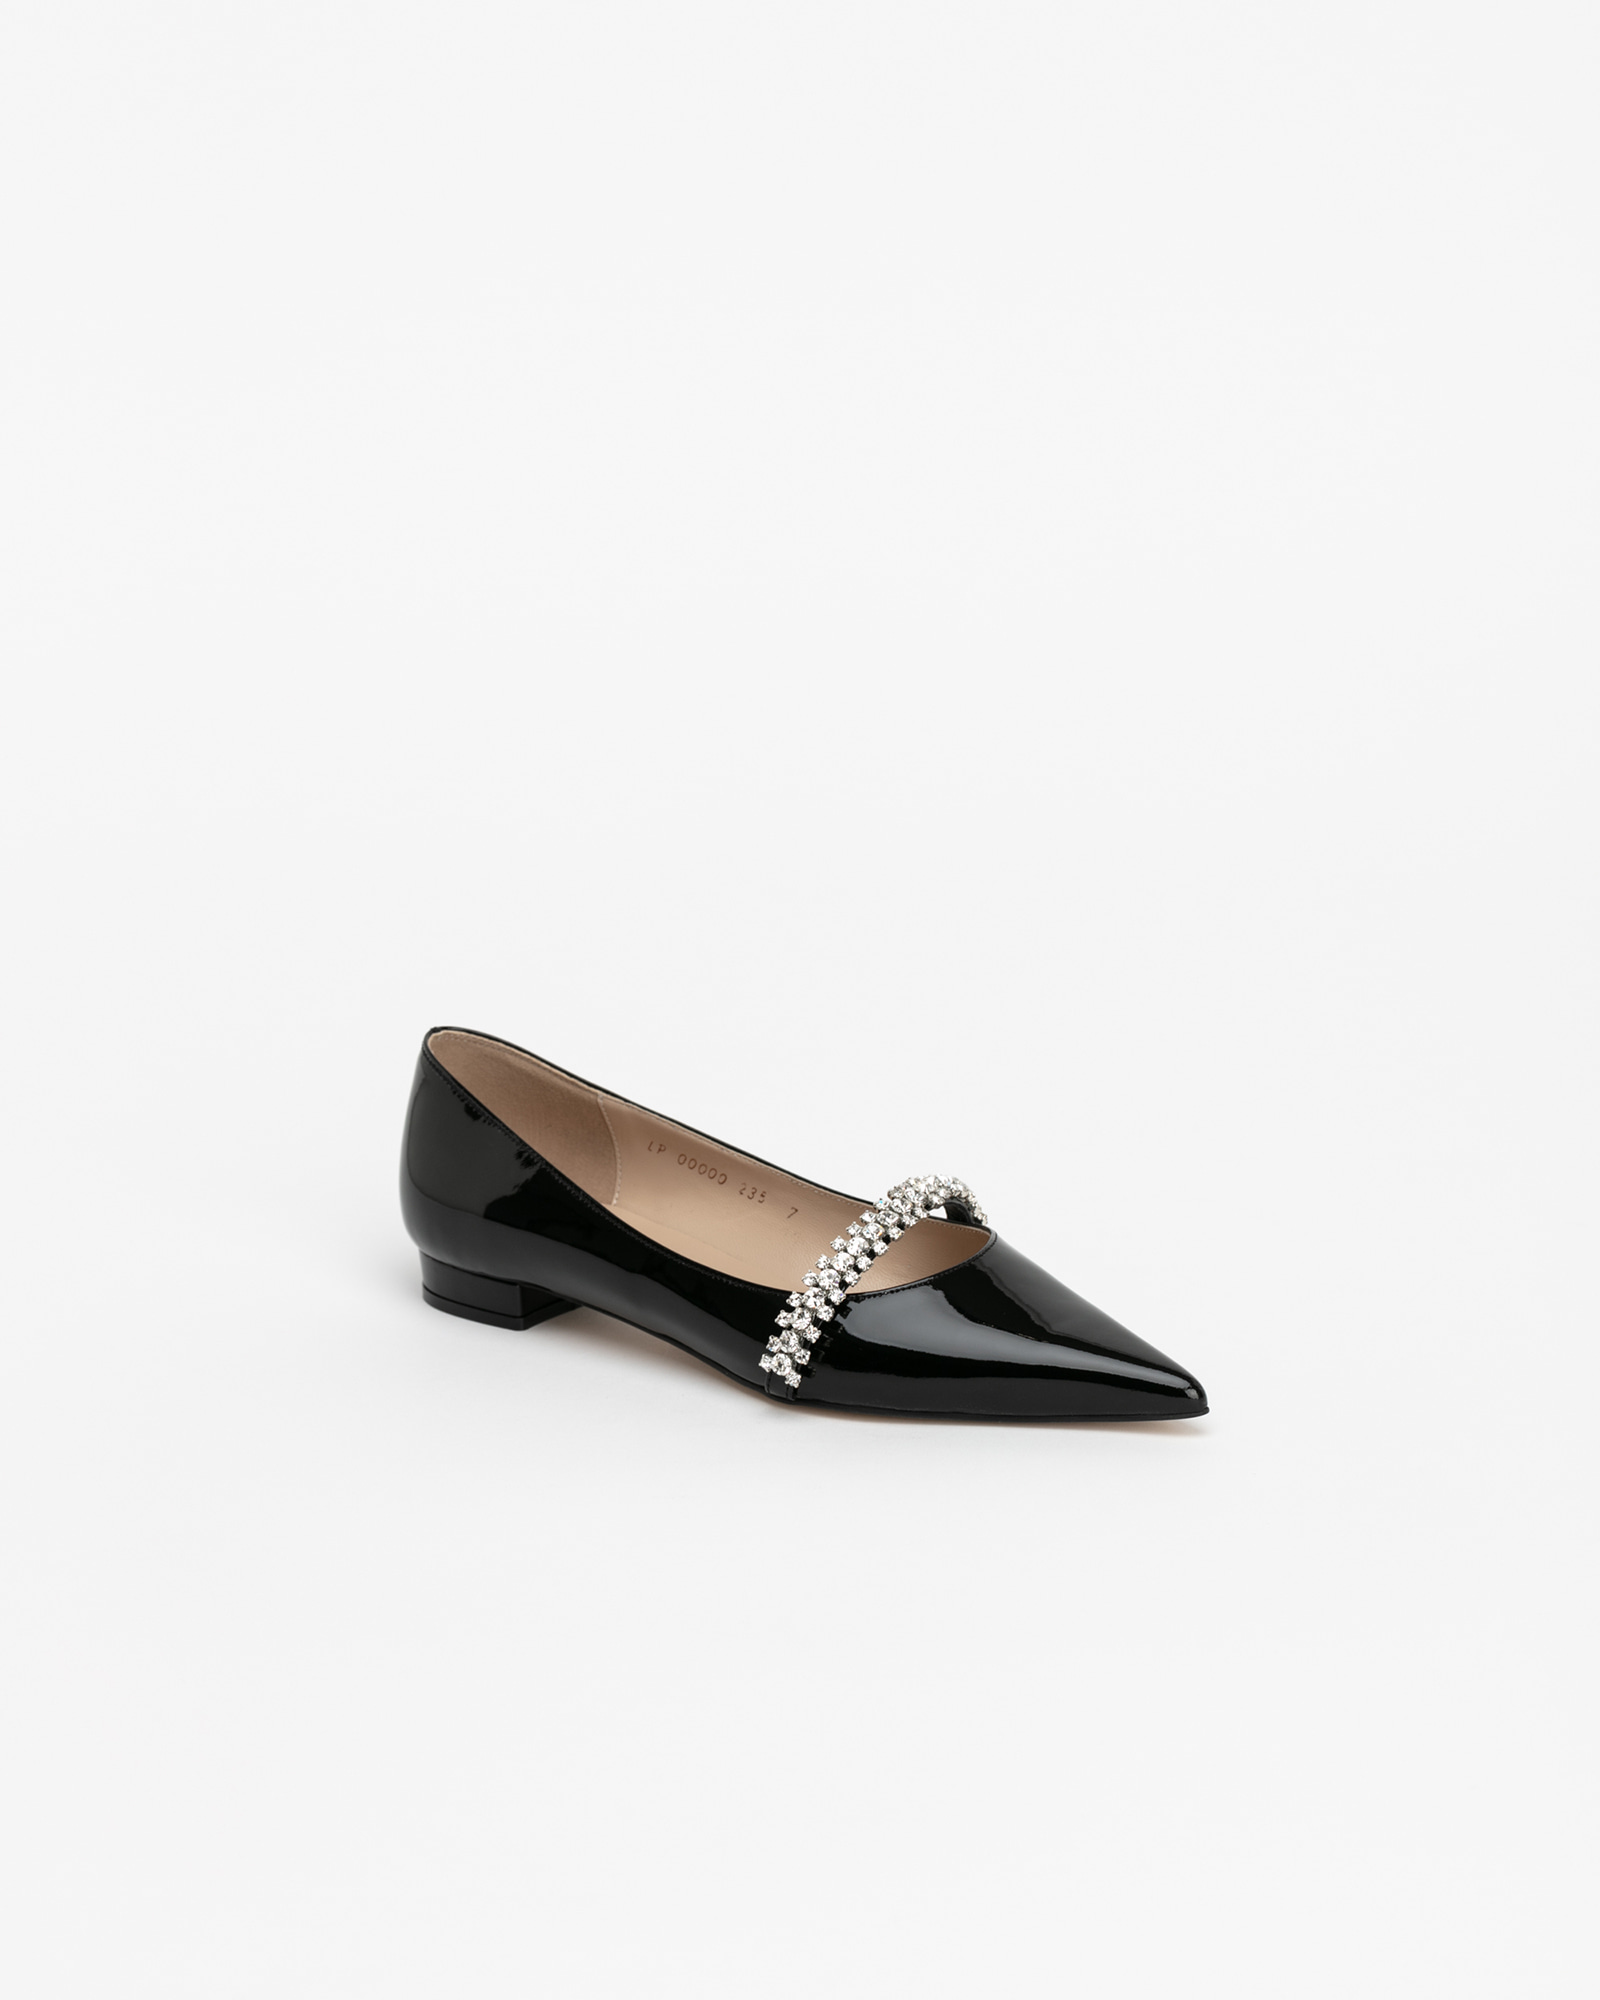 Patio Stiletto Flat Shoes in Black Patent